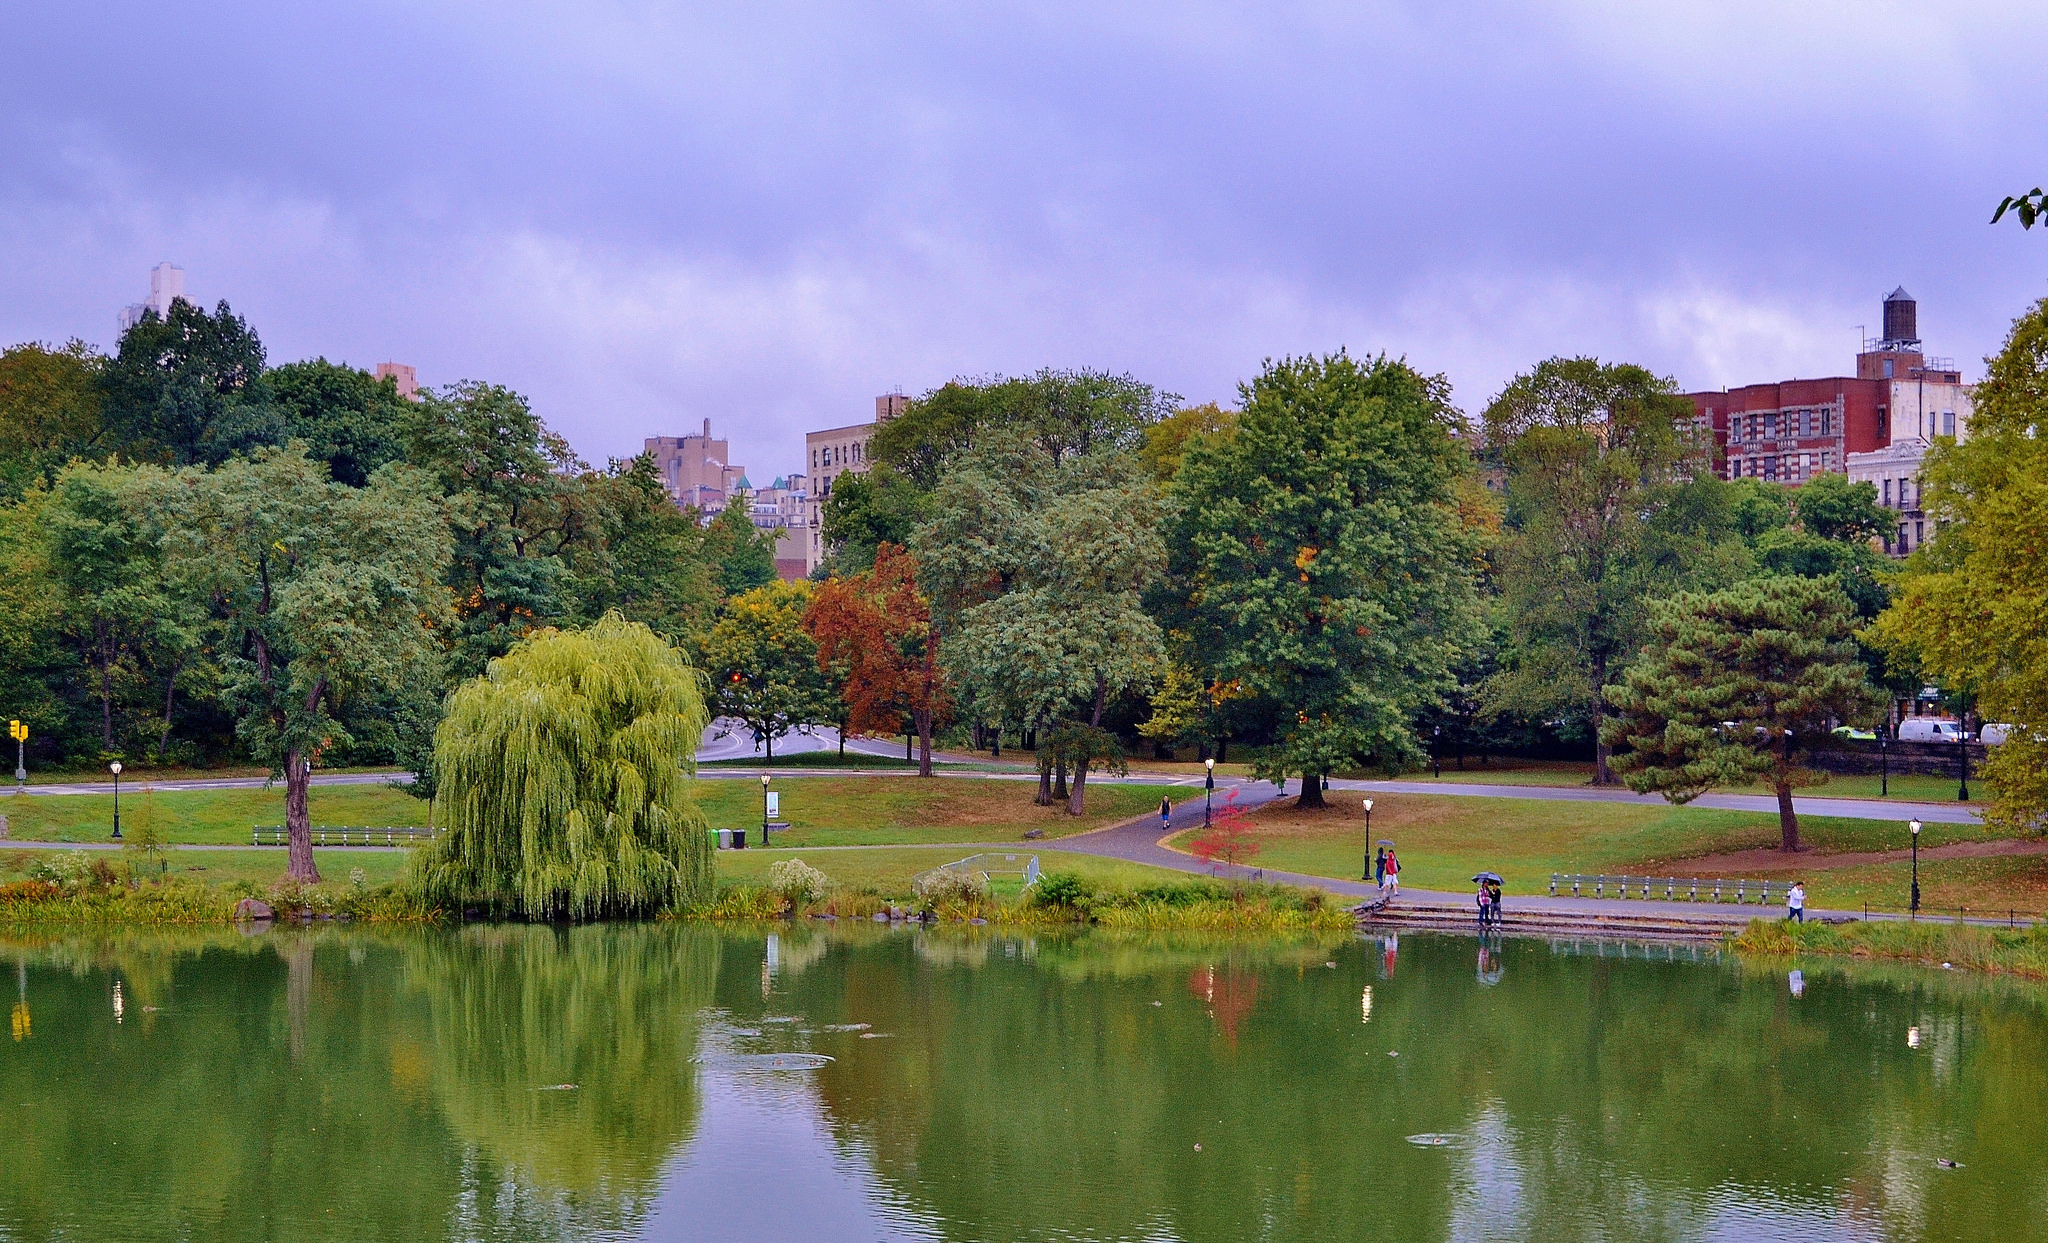 Harlem Meer, Central Park (Flickr/Gigi_nyc)